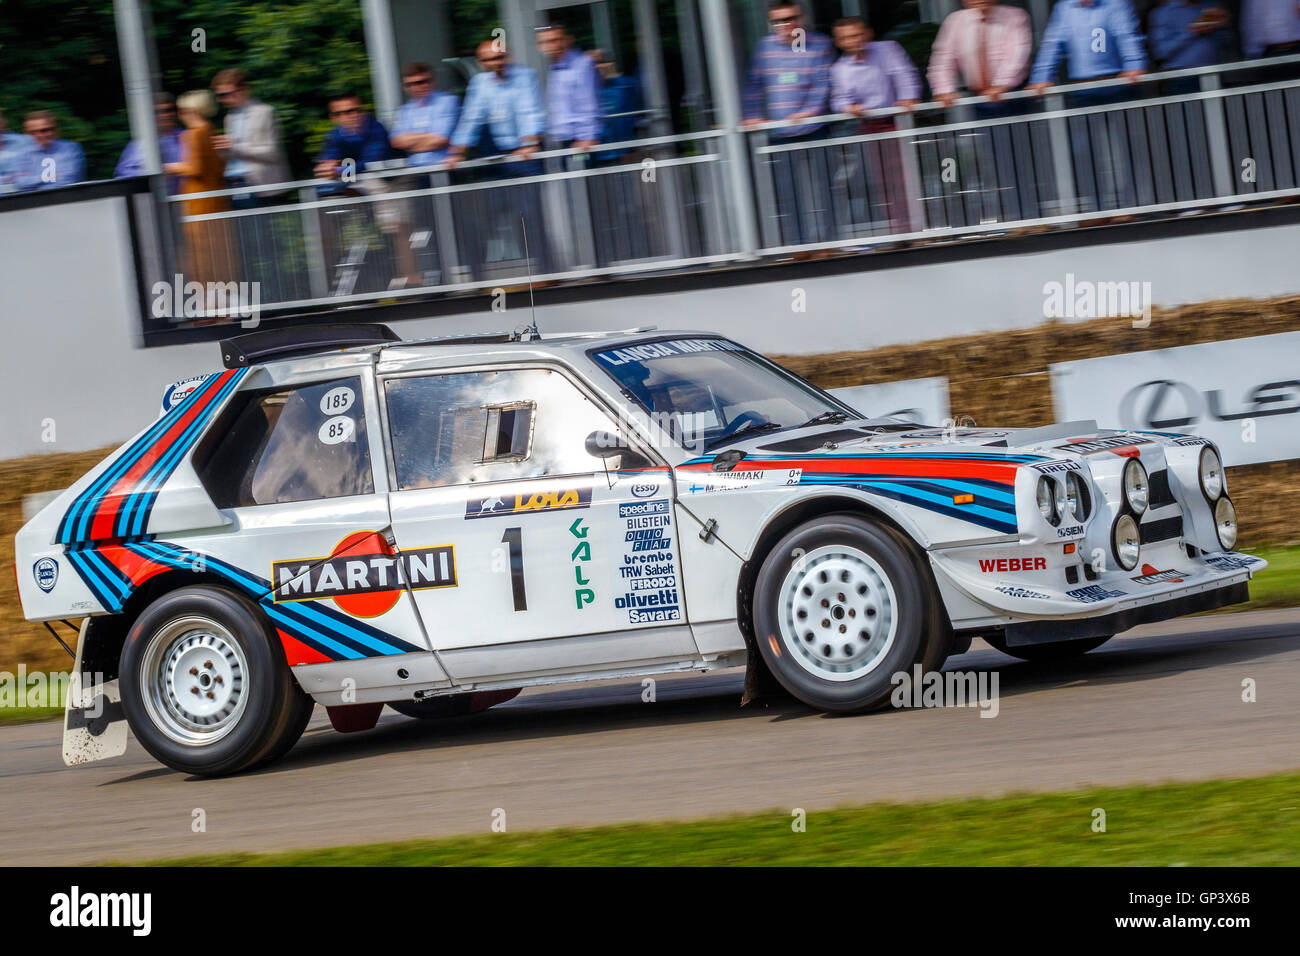 https://c8.alamy.com/comp/GP3X6B/1985-lancia-delta-s4-group-b-rally-car-with-driver-henry-pearman-at-GP3X6B.jpg